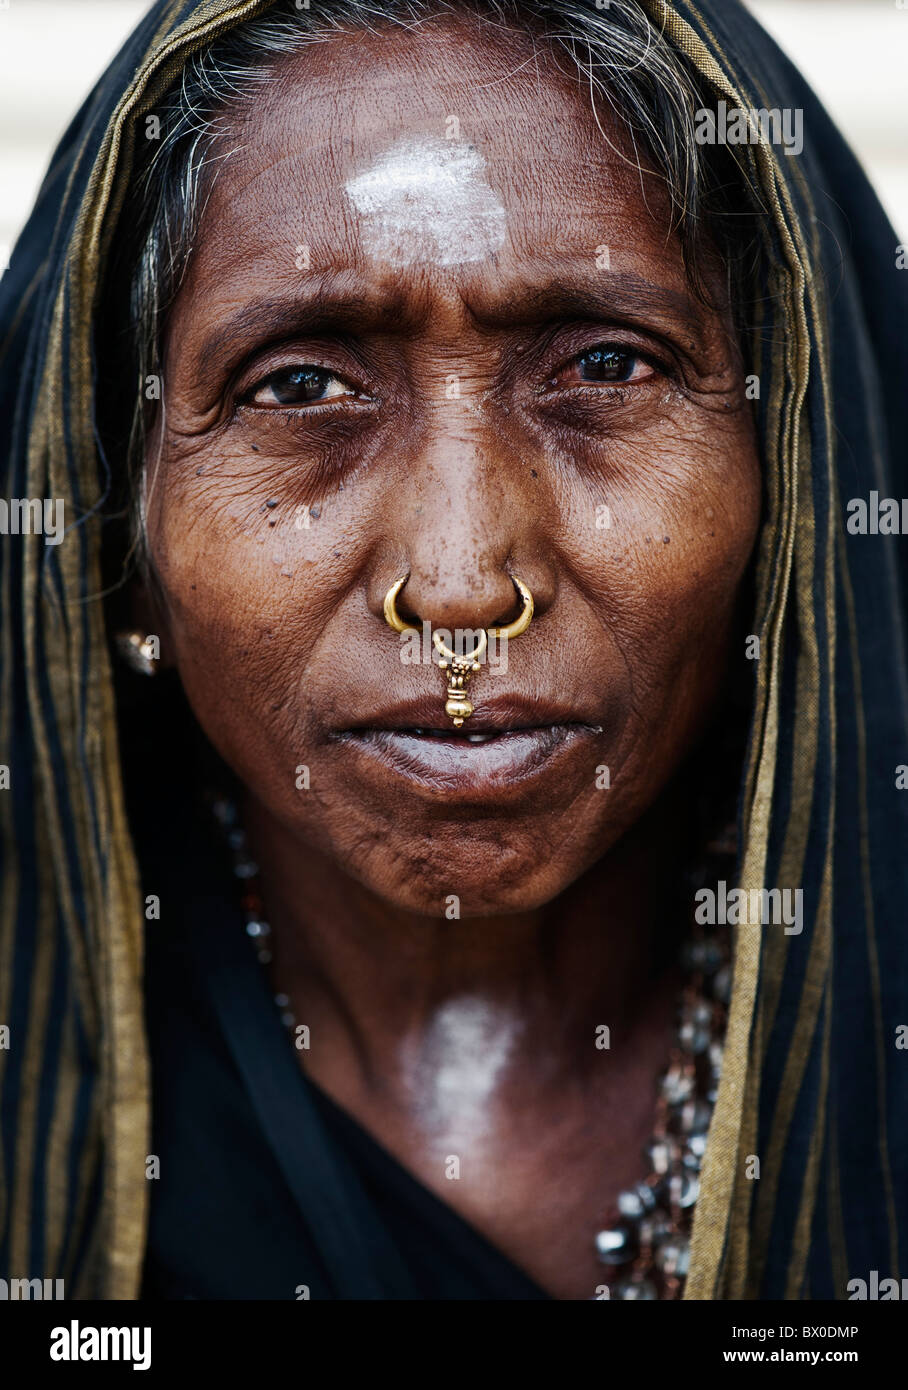 Old Indian woman on Ayappa pilgrimage in Puttaparthi, Andhra Pradesh, India Stock Photo